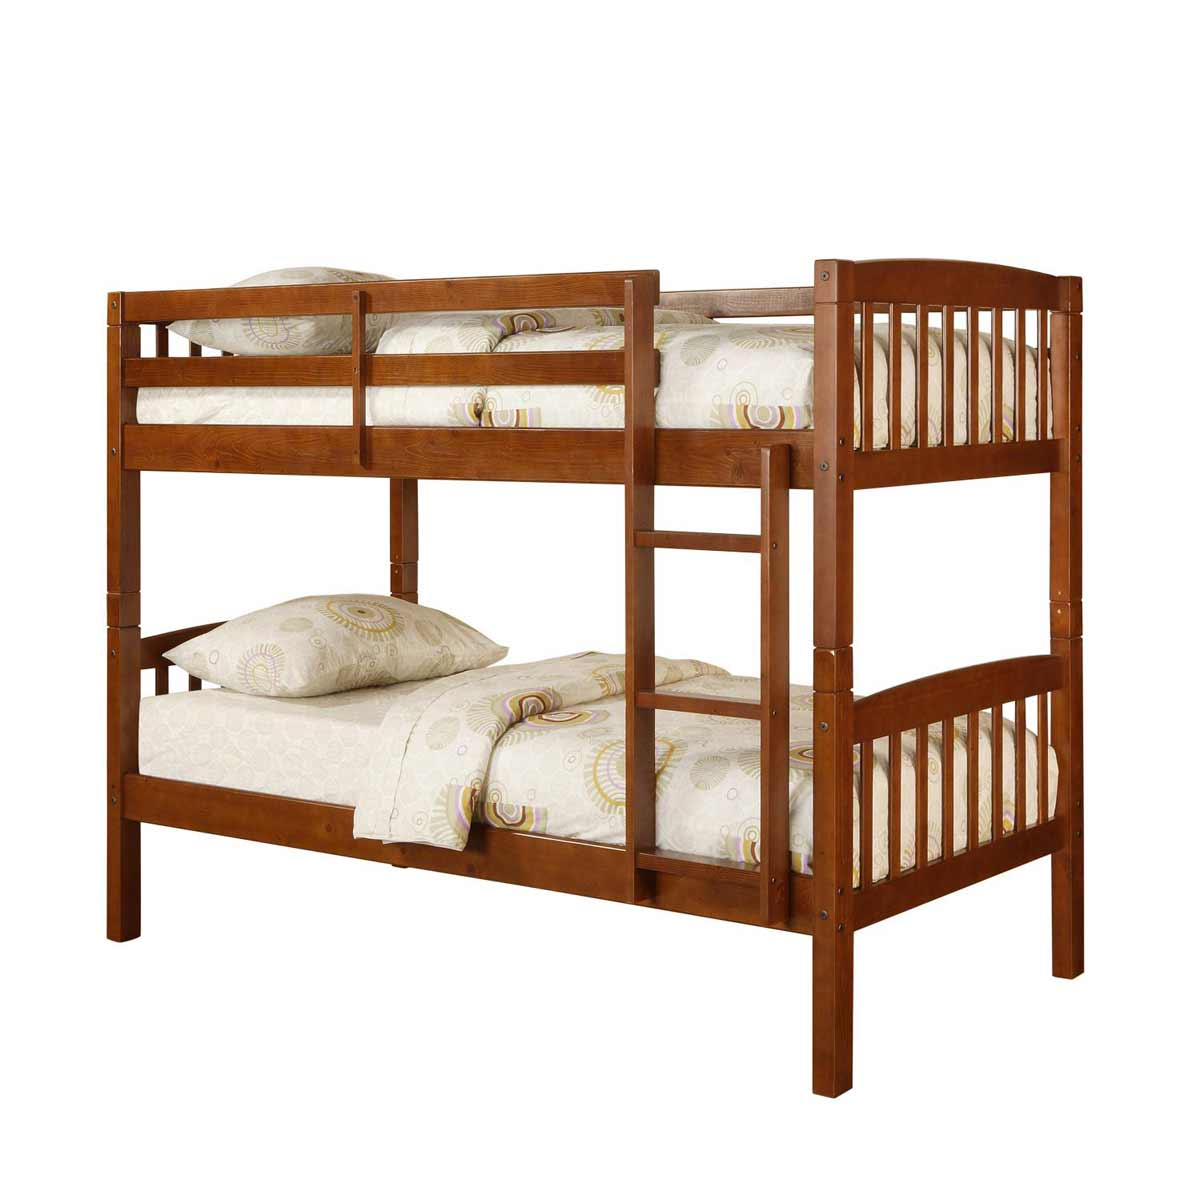 Dorel coil twin size bunk beds